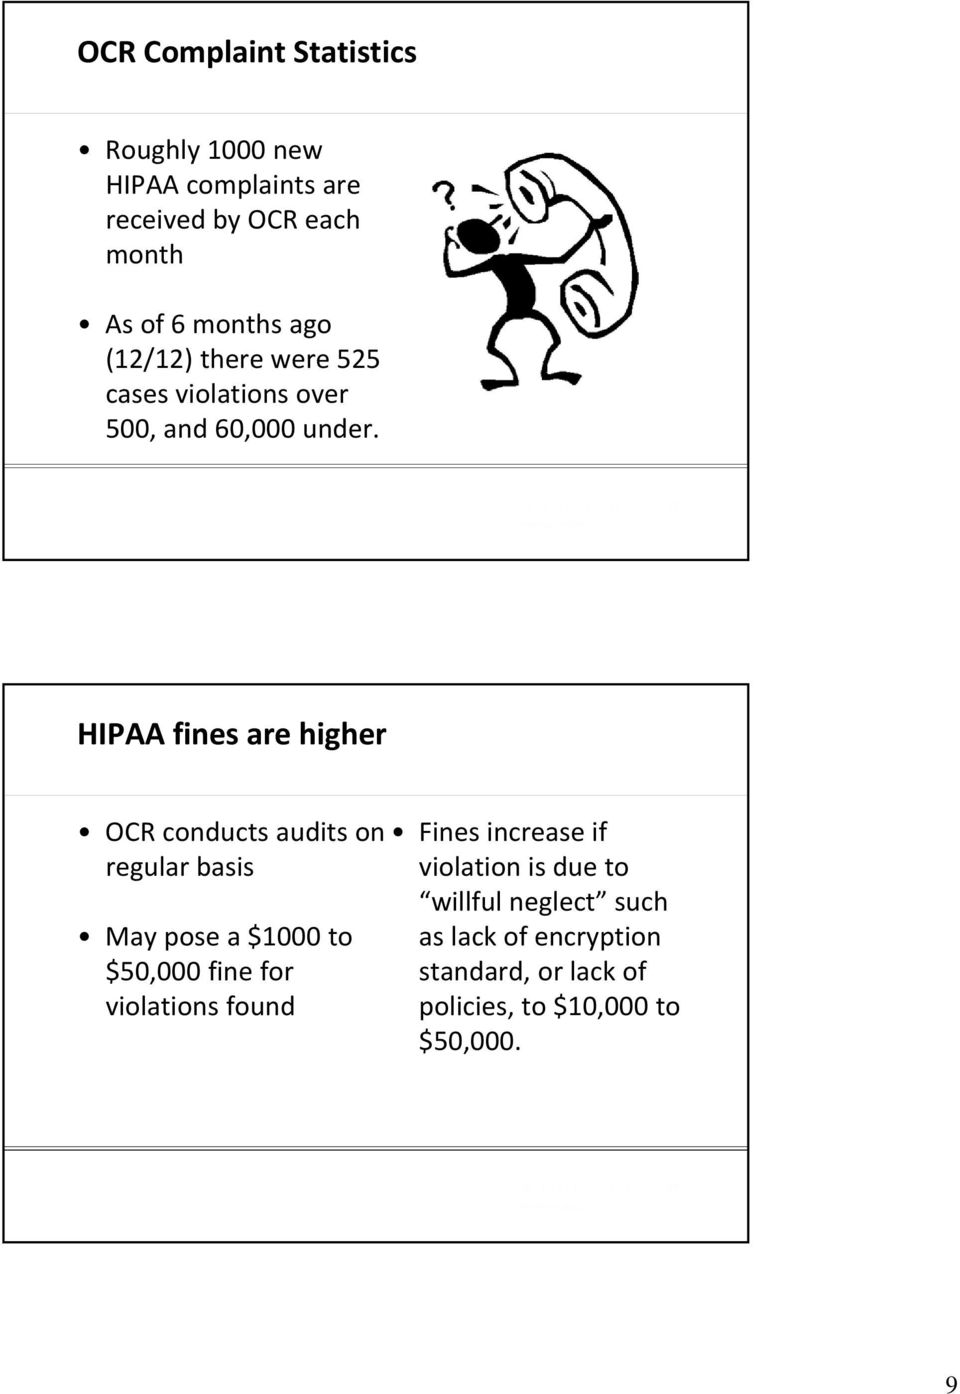 HIPAA fines are higher OCR conducts audits on regular basis May pose a $1000 to $50,000 fine for